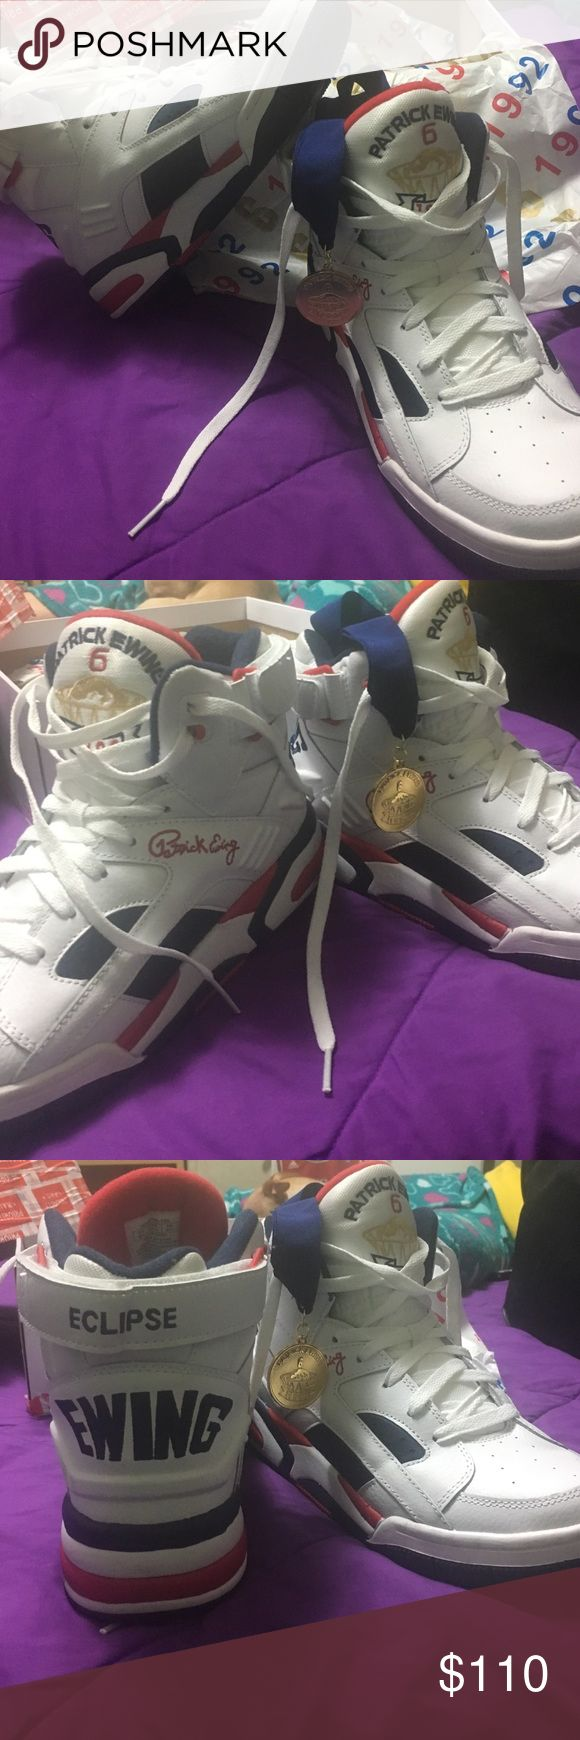 Size 9.5 Patrick Ewing 1992 Olympic Eclipse Condition like new, worn once. Comes with a medal. Comes with original box. Will drop price down to 100 if interested. Shoes Sneakers